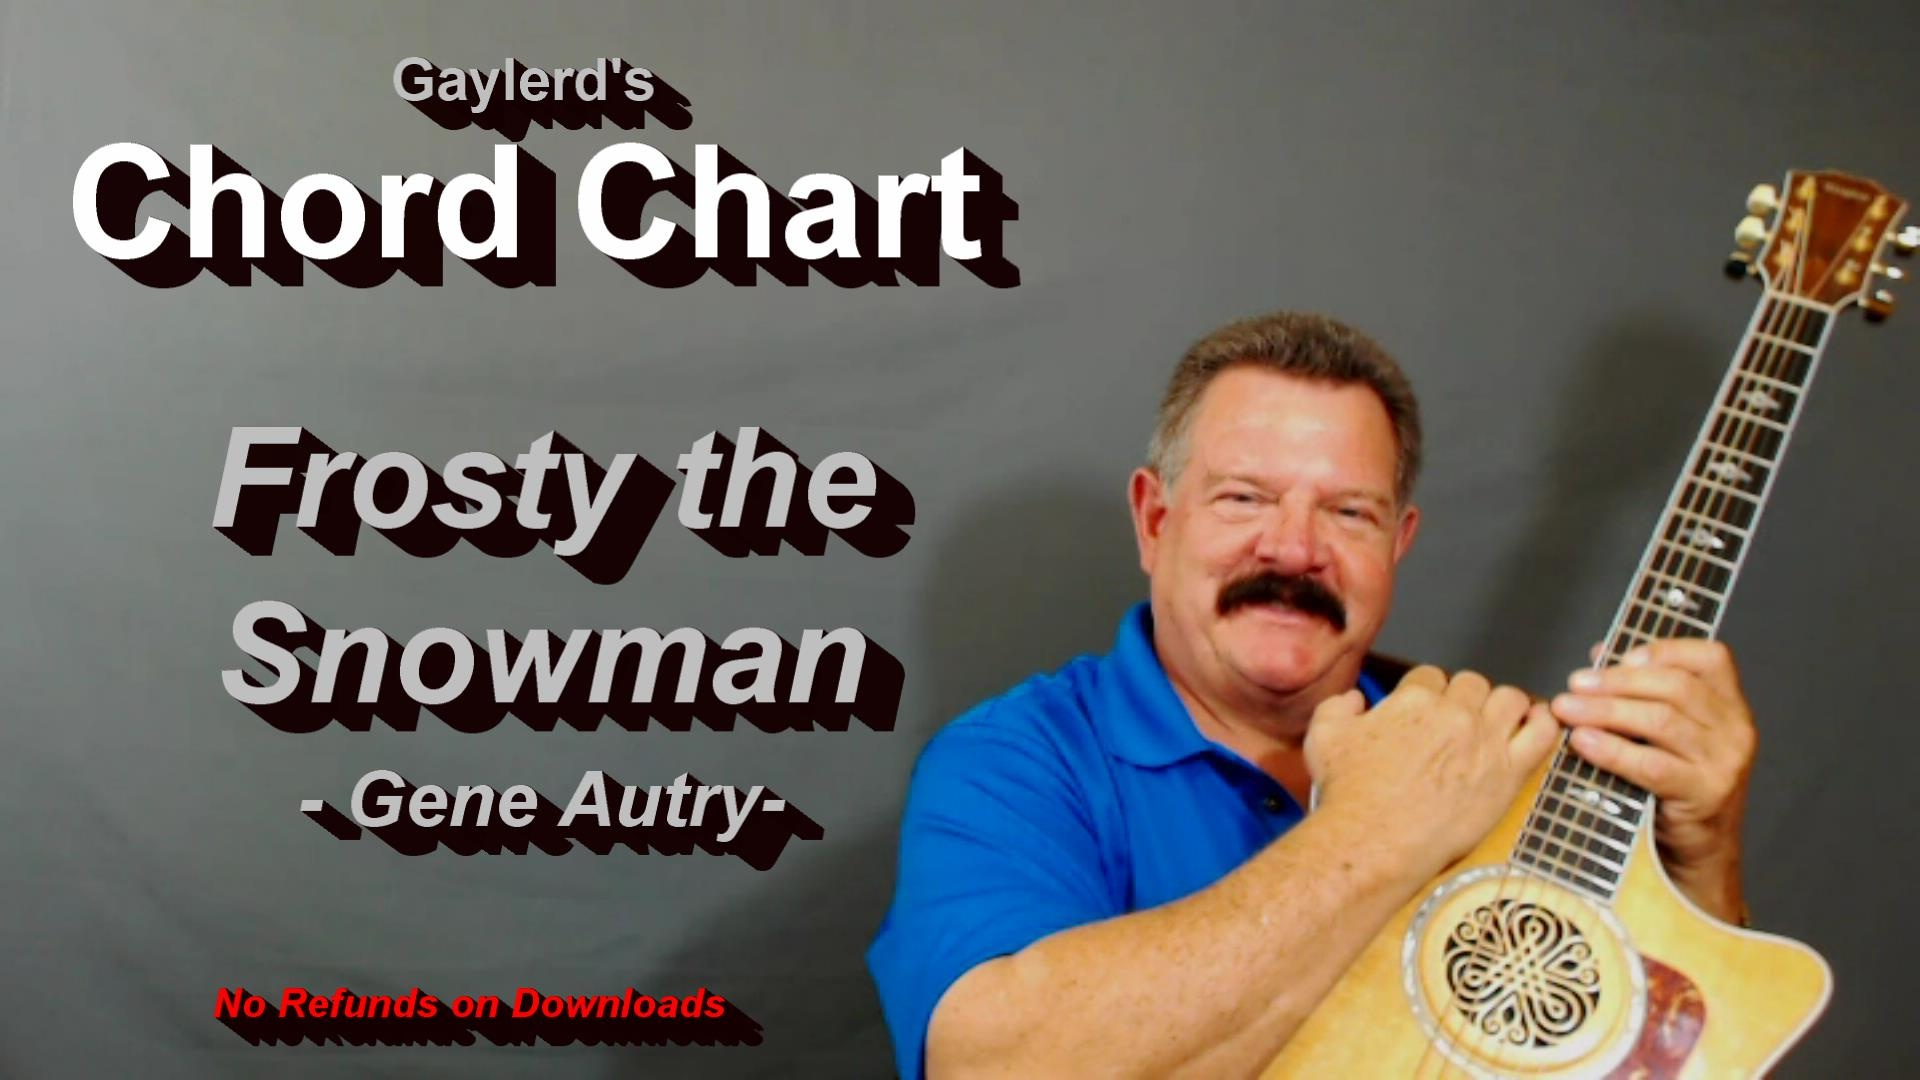 Frosty the Snowman - FREE  Chord Chart